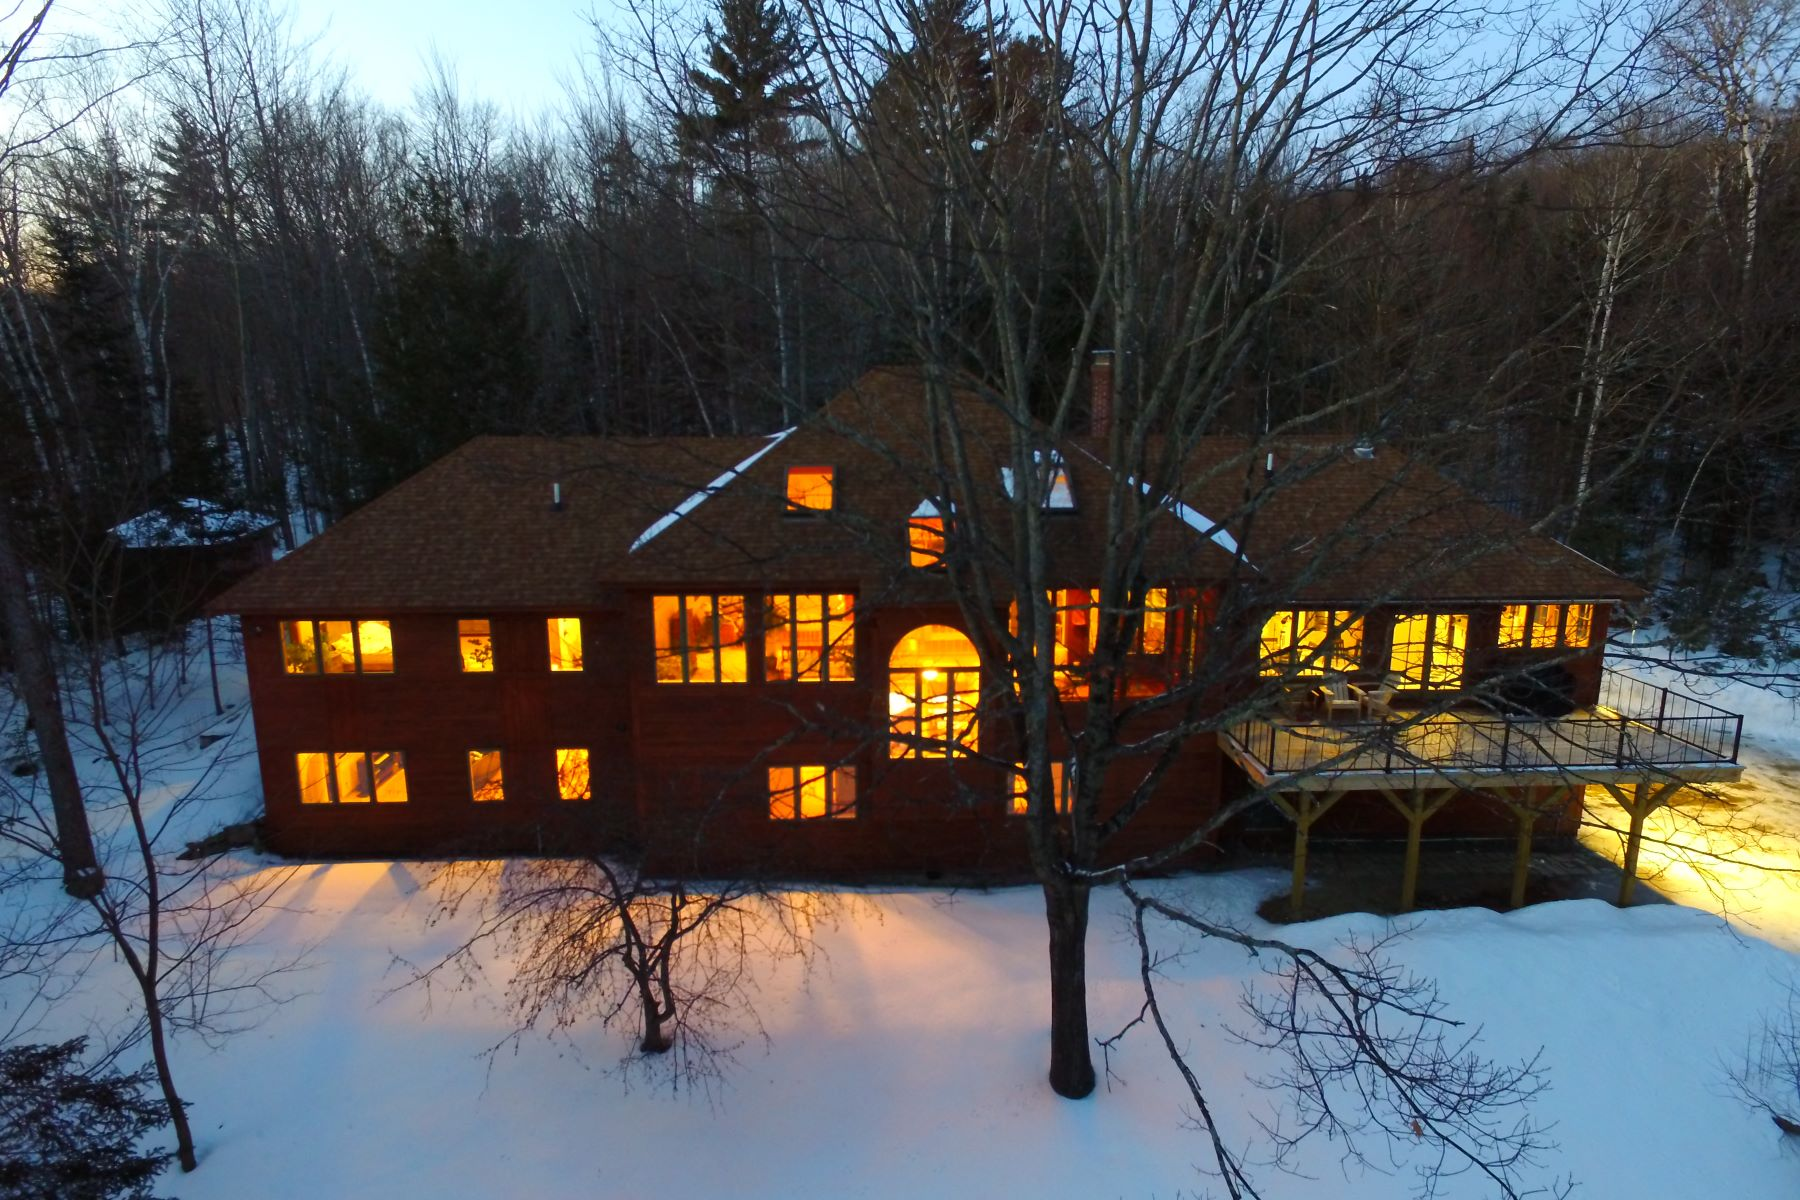 Single Family Home for Sale at 36 Forest Rd, Franconia 36 Forest Rd Franconia, New Hampshire 03580 United States